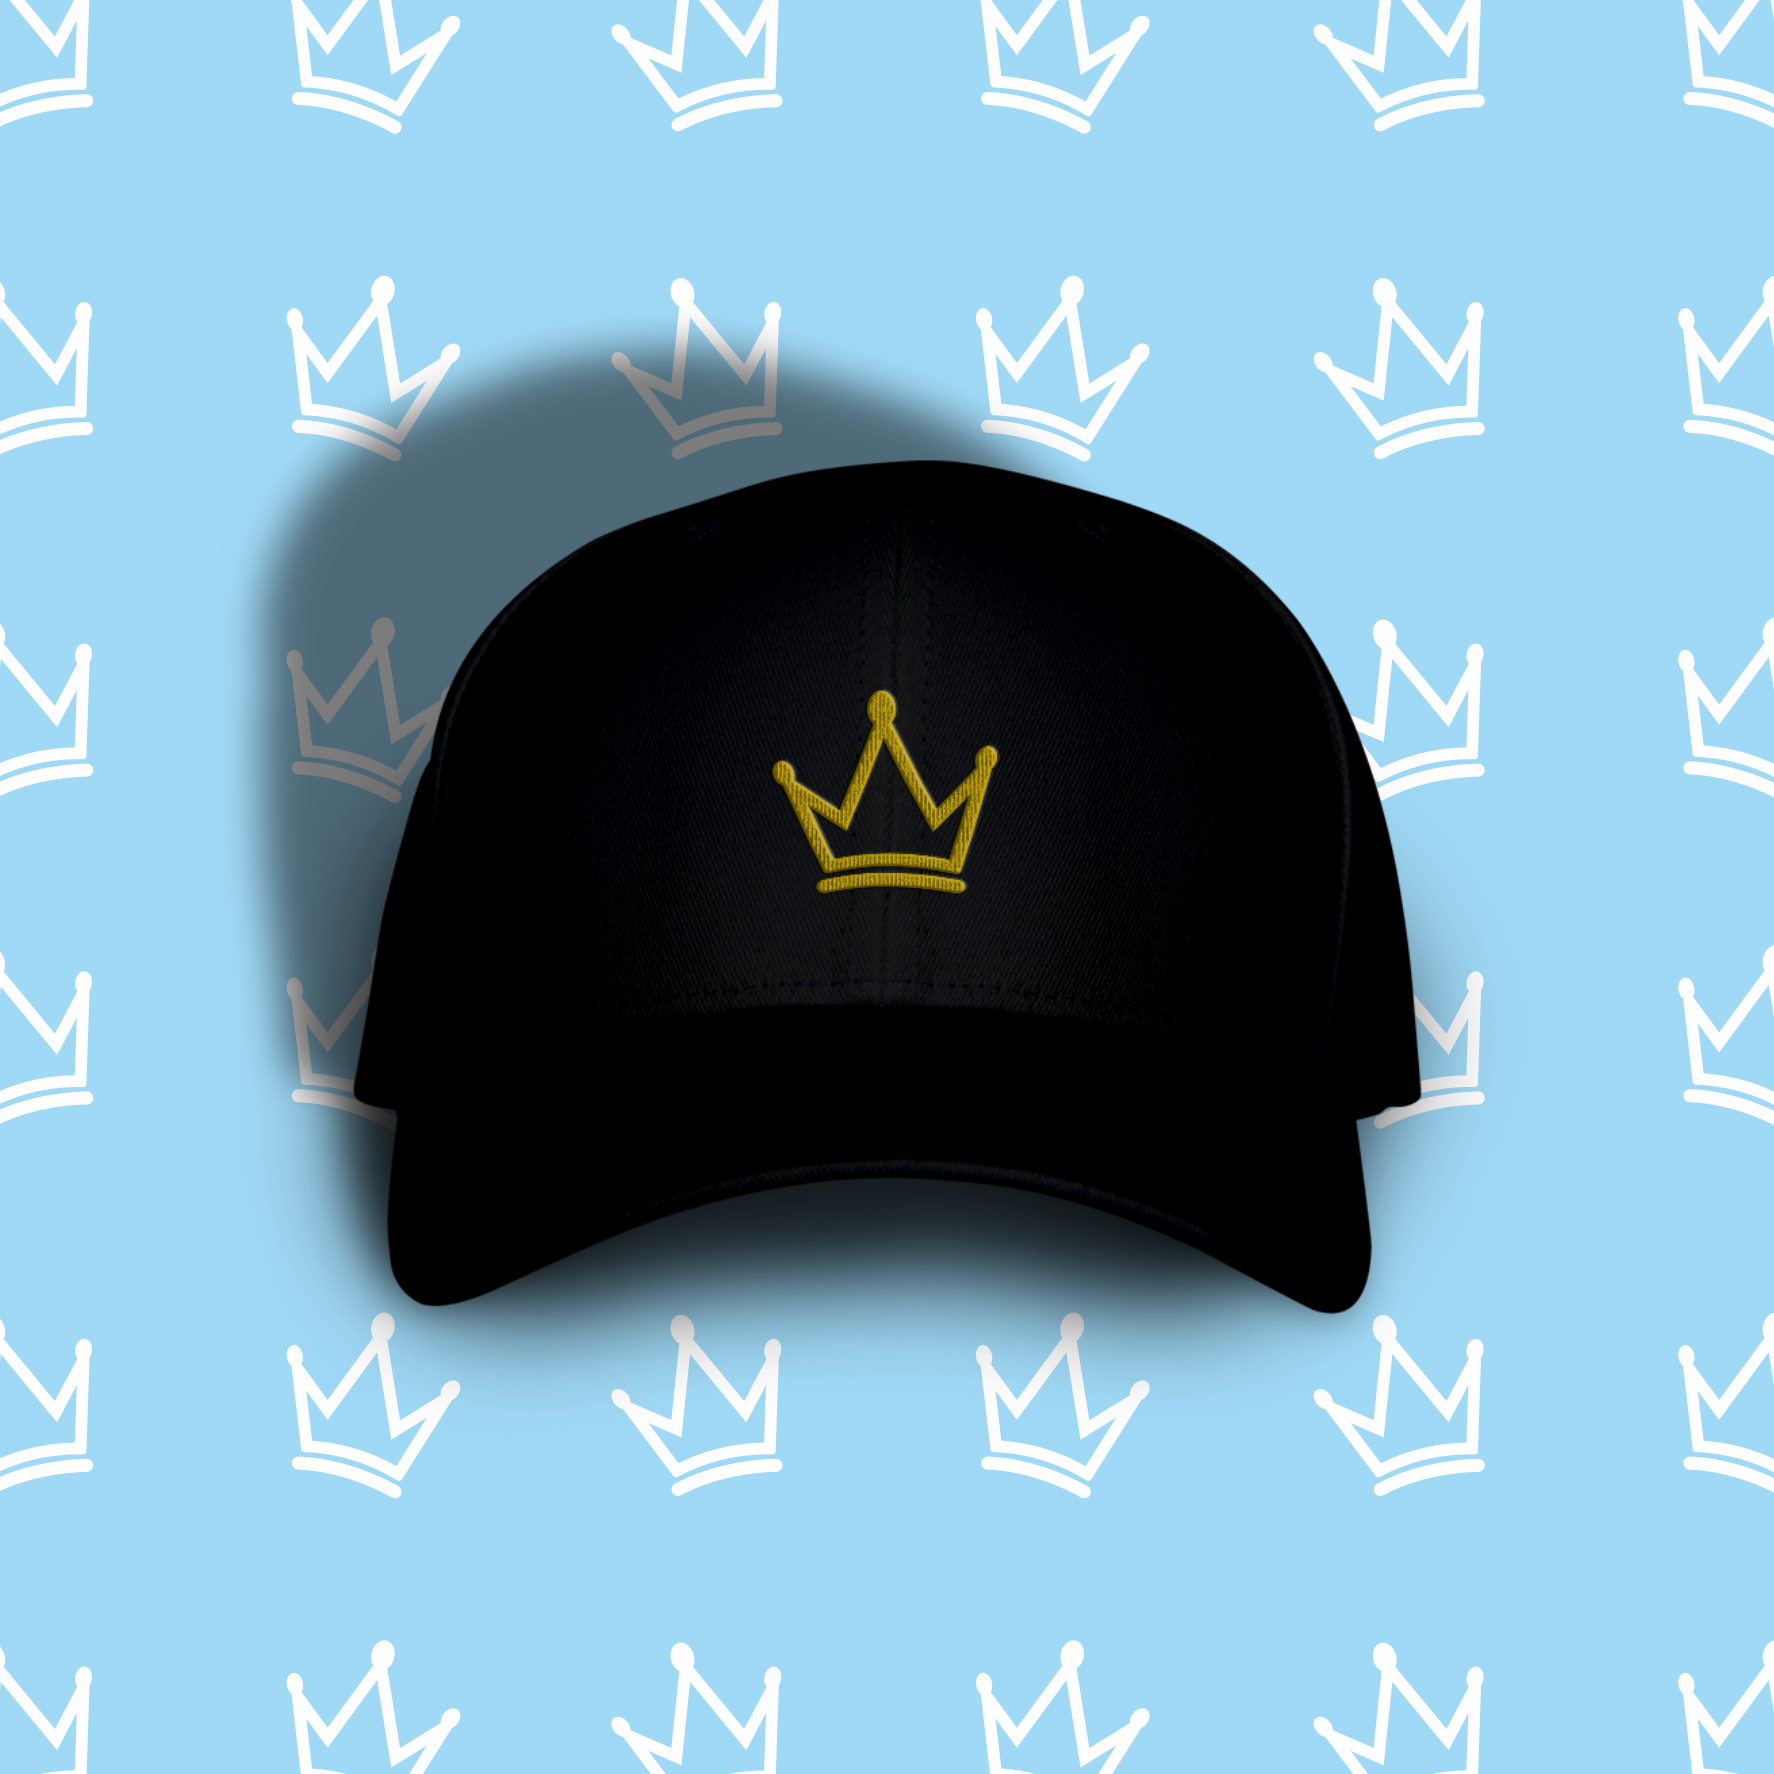 Black Crown needs a fresh logo for the business